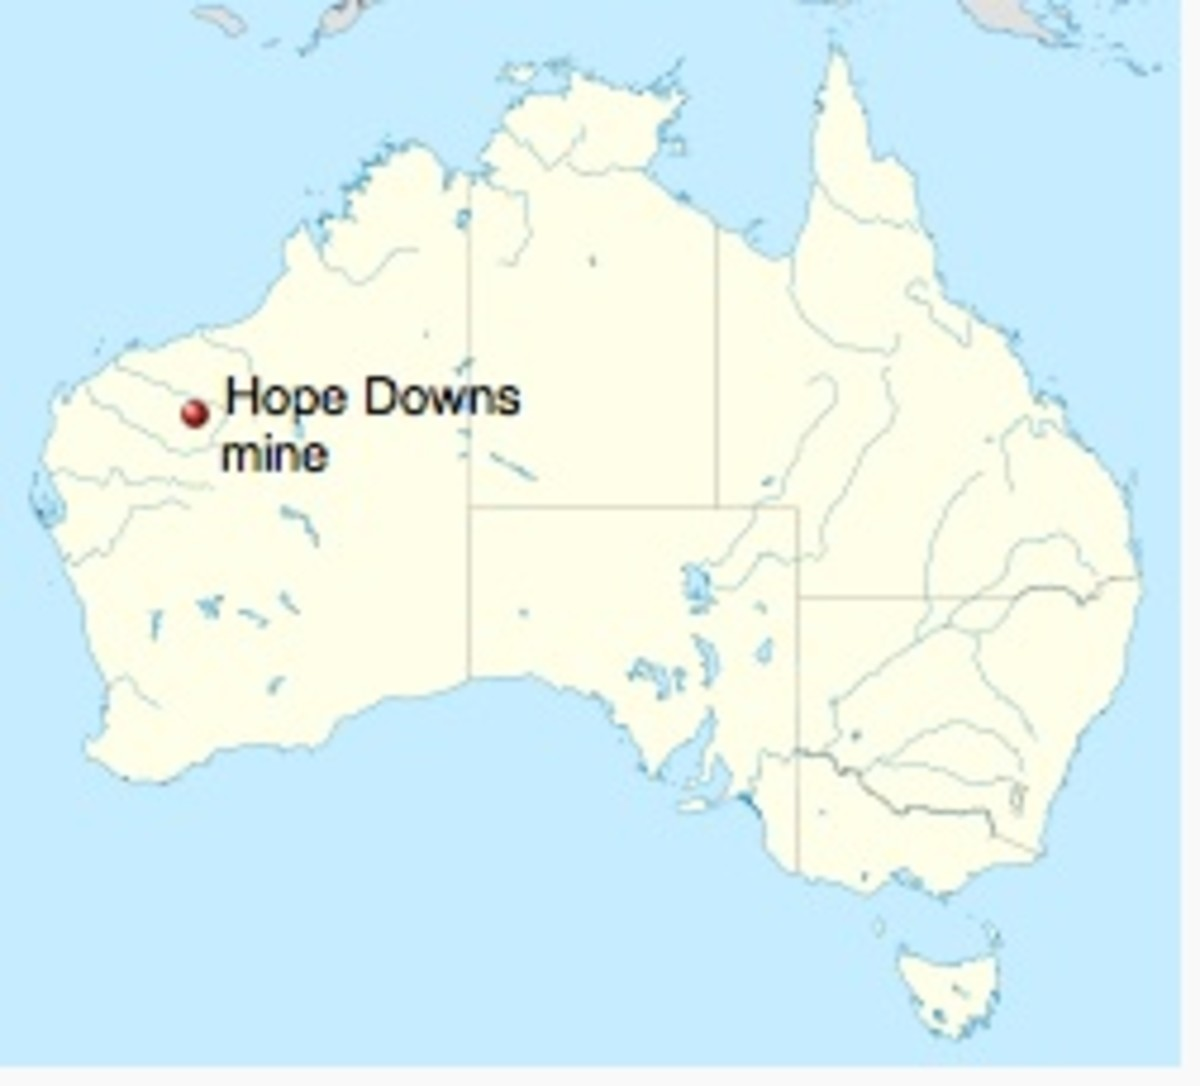 Location of Hope Downs iron ore mine in Western Australia. Named after Lang Hancock's second wife